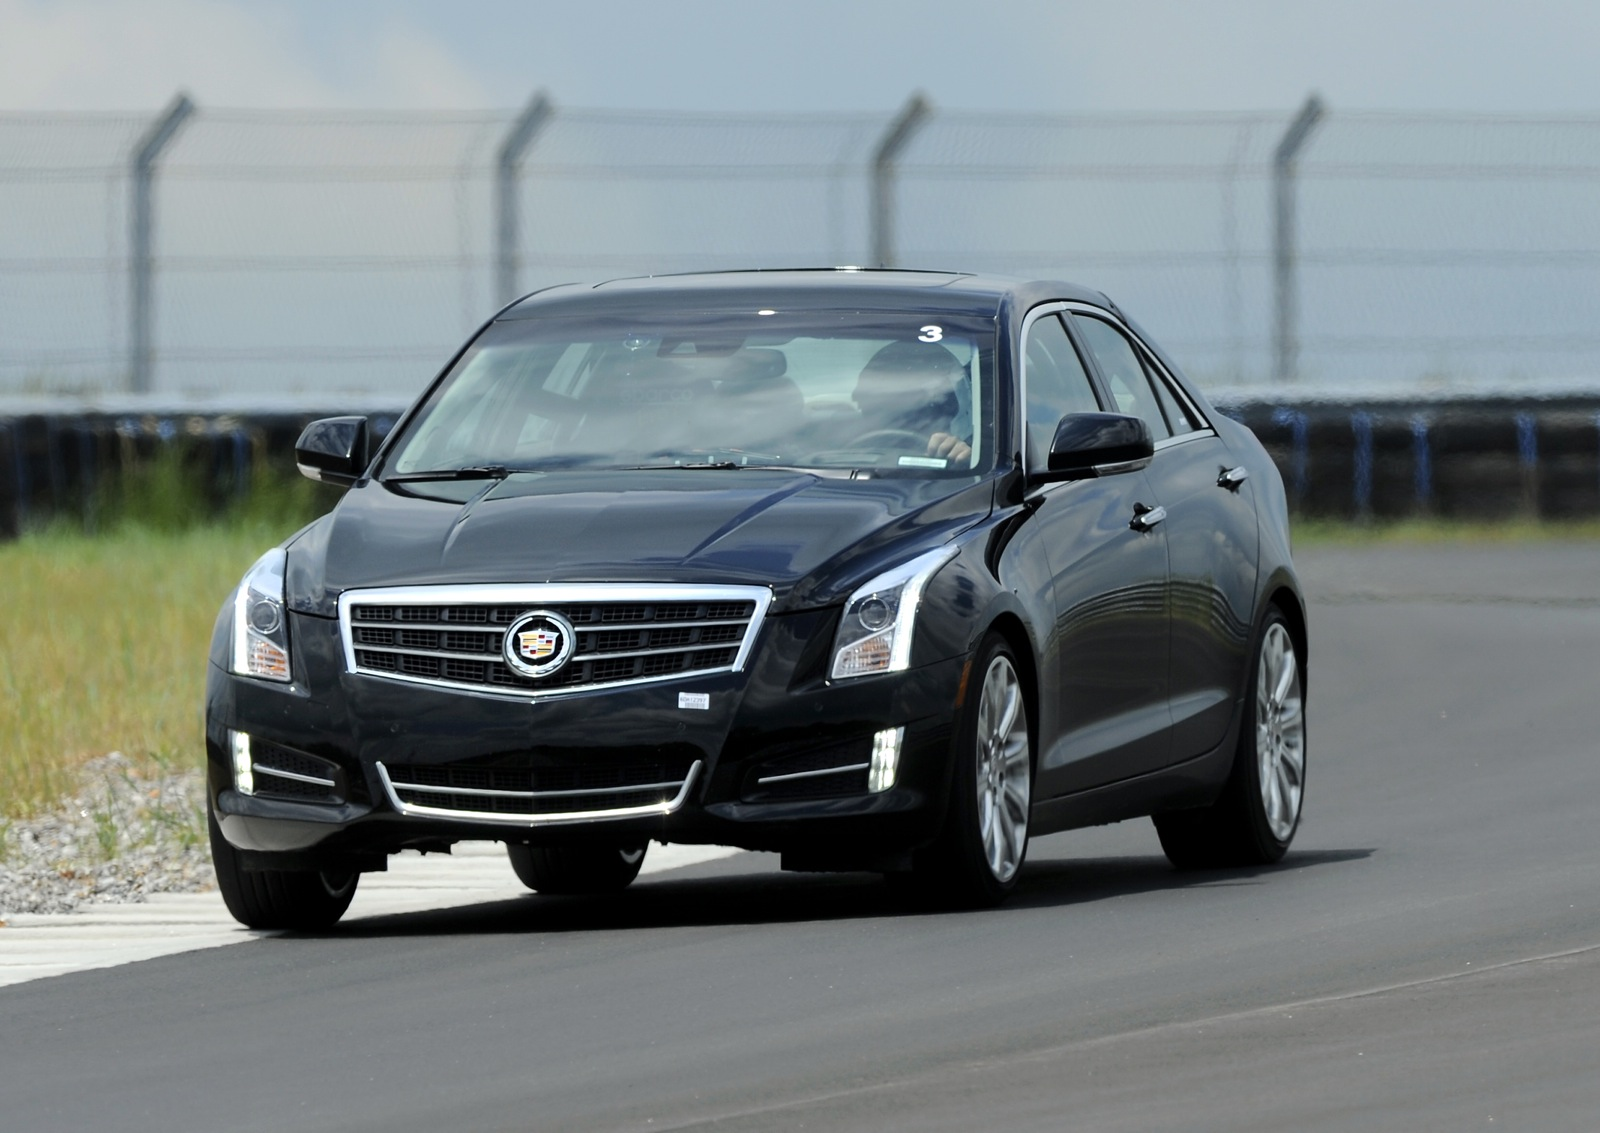 2013 Cadillac ATS 2.5-Liter Scores 33 MPG Highway Rating